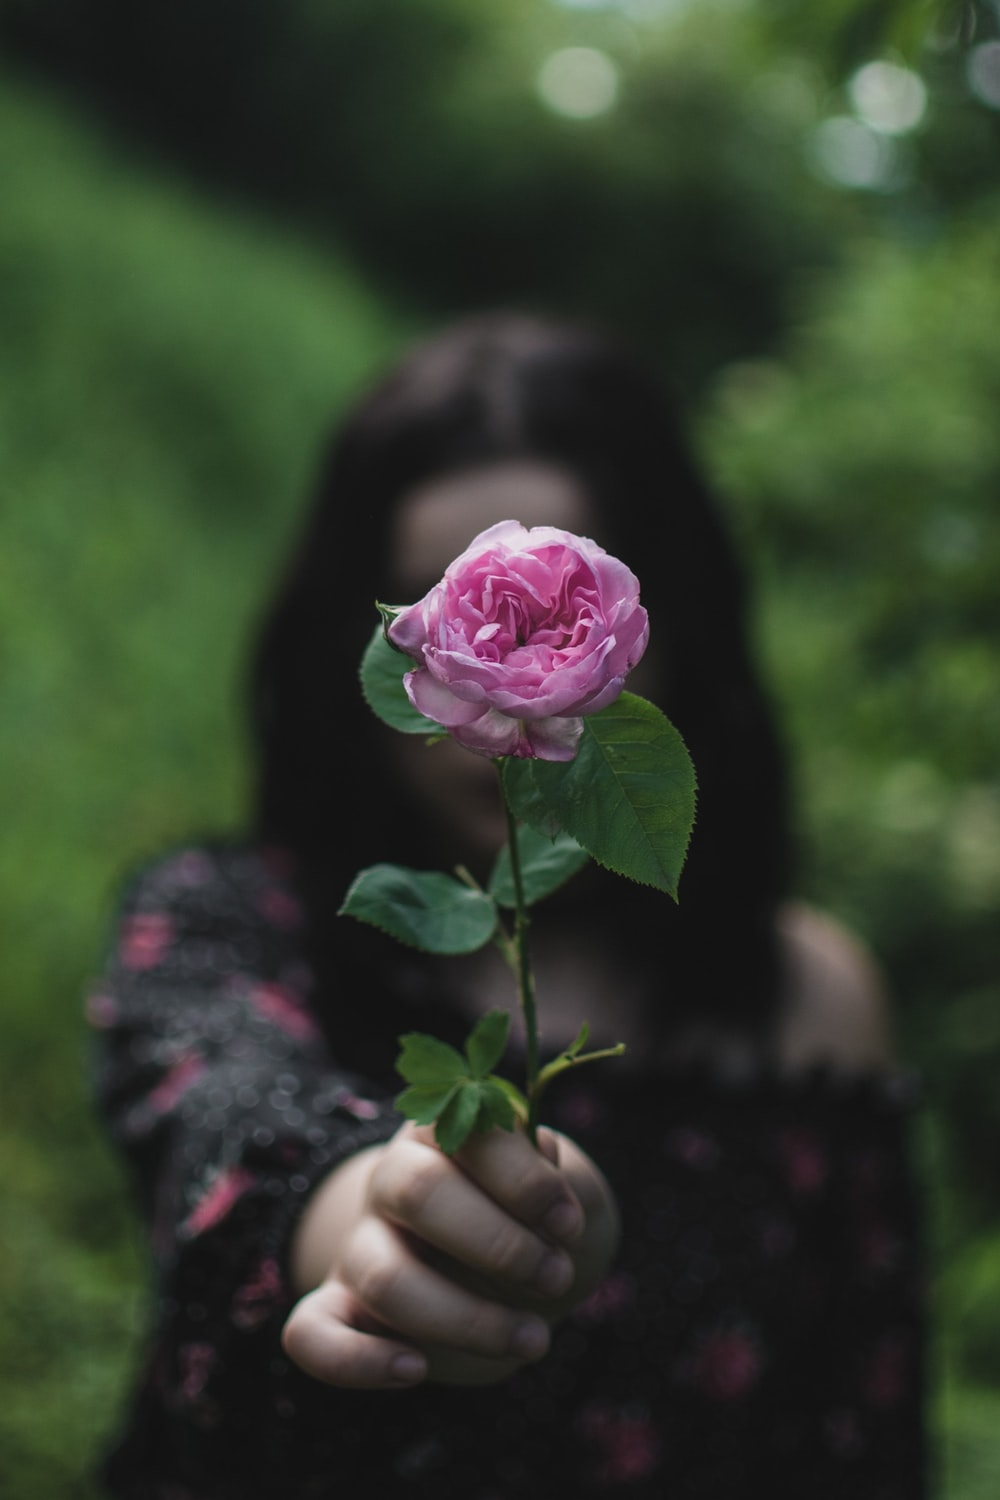 person holding pink rose during daytime